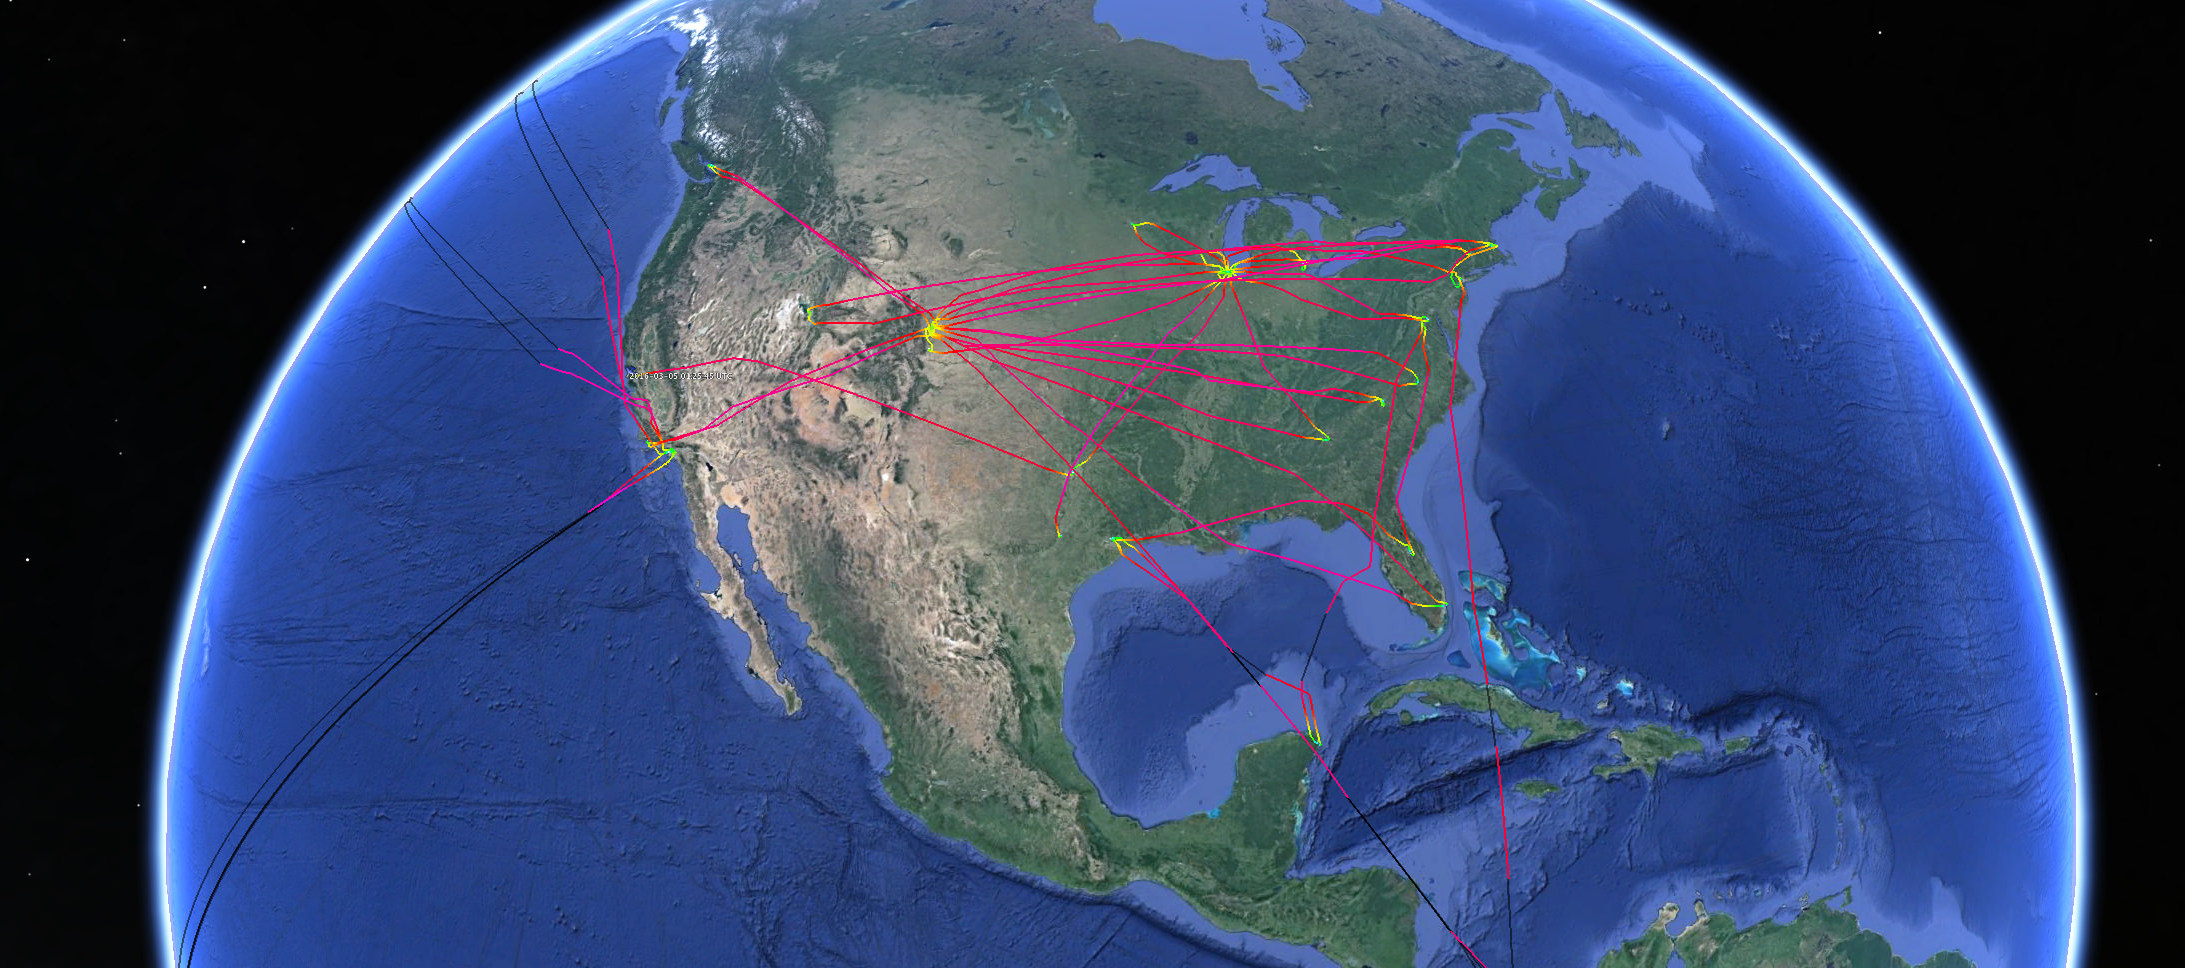 Tracing the route of 3 United Airlines aircraft over a week.